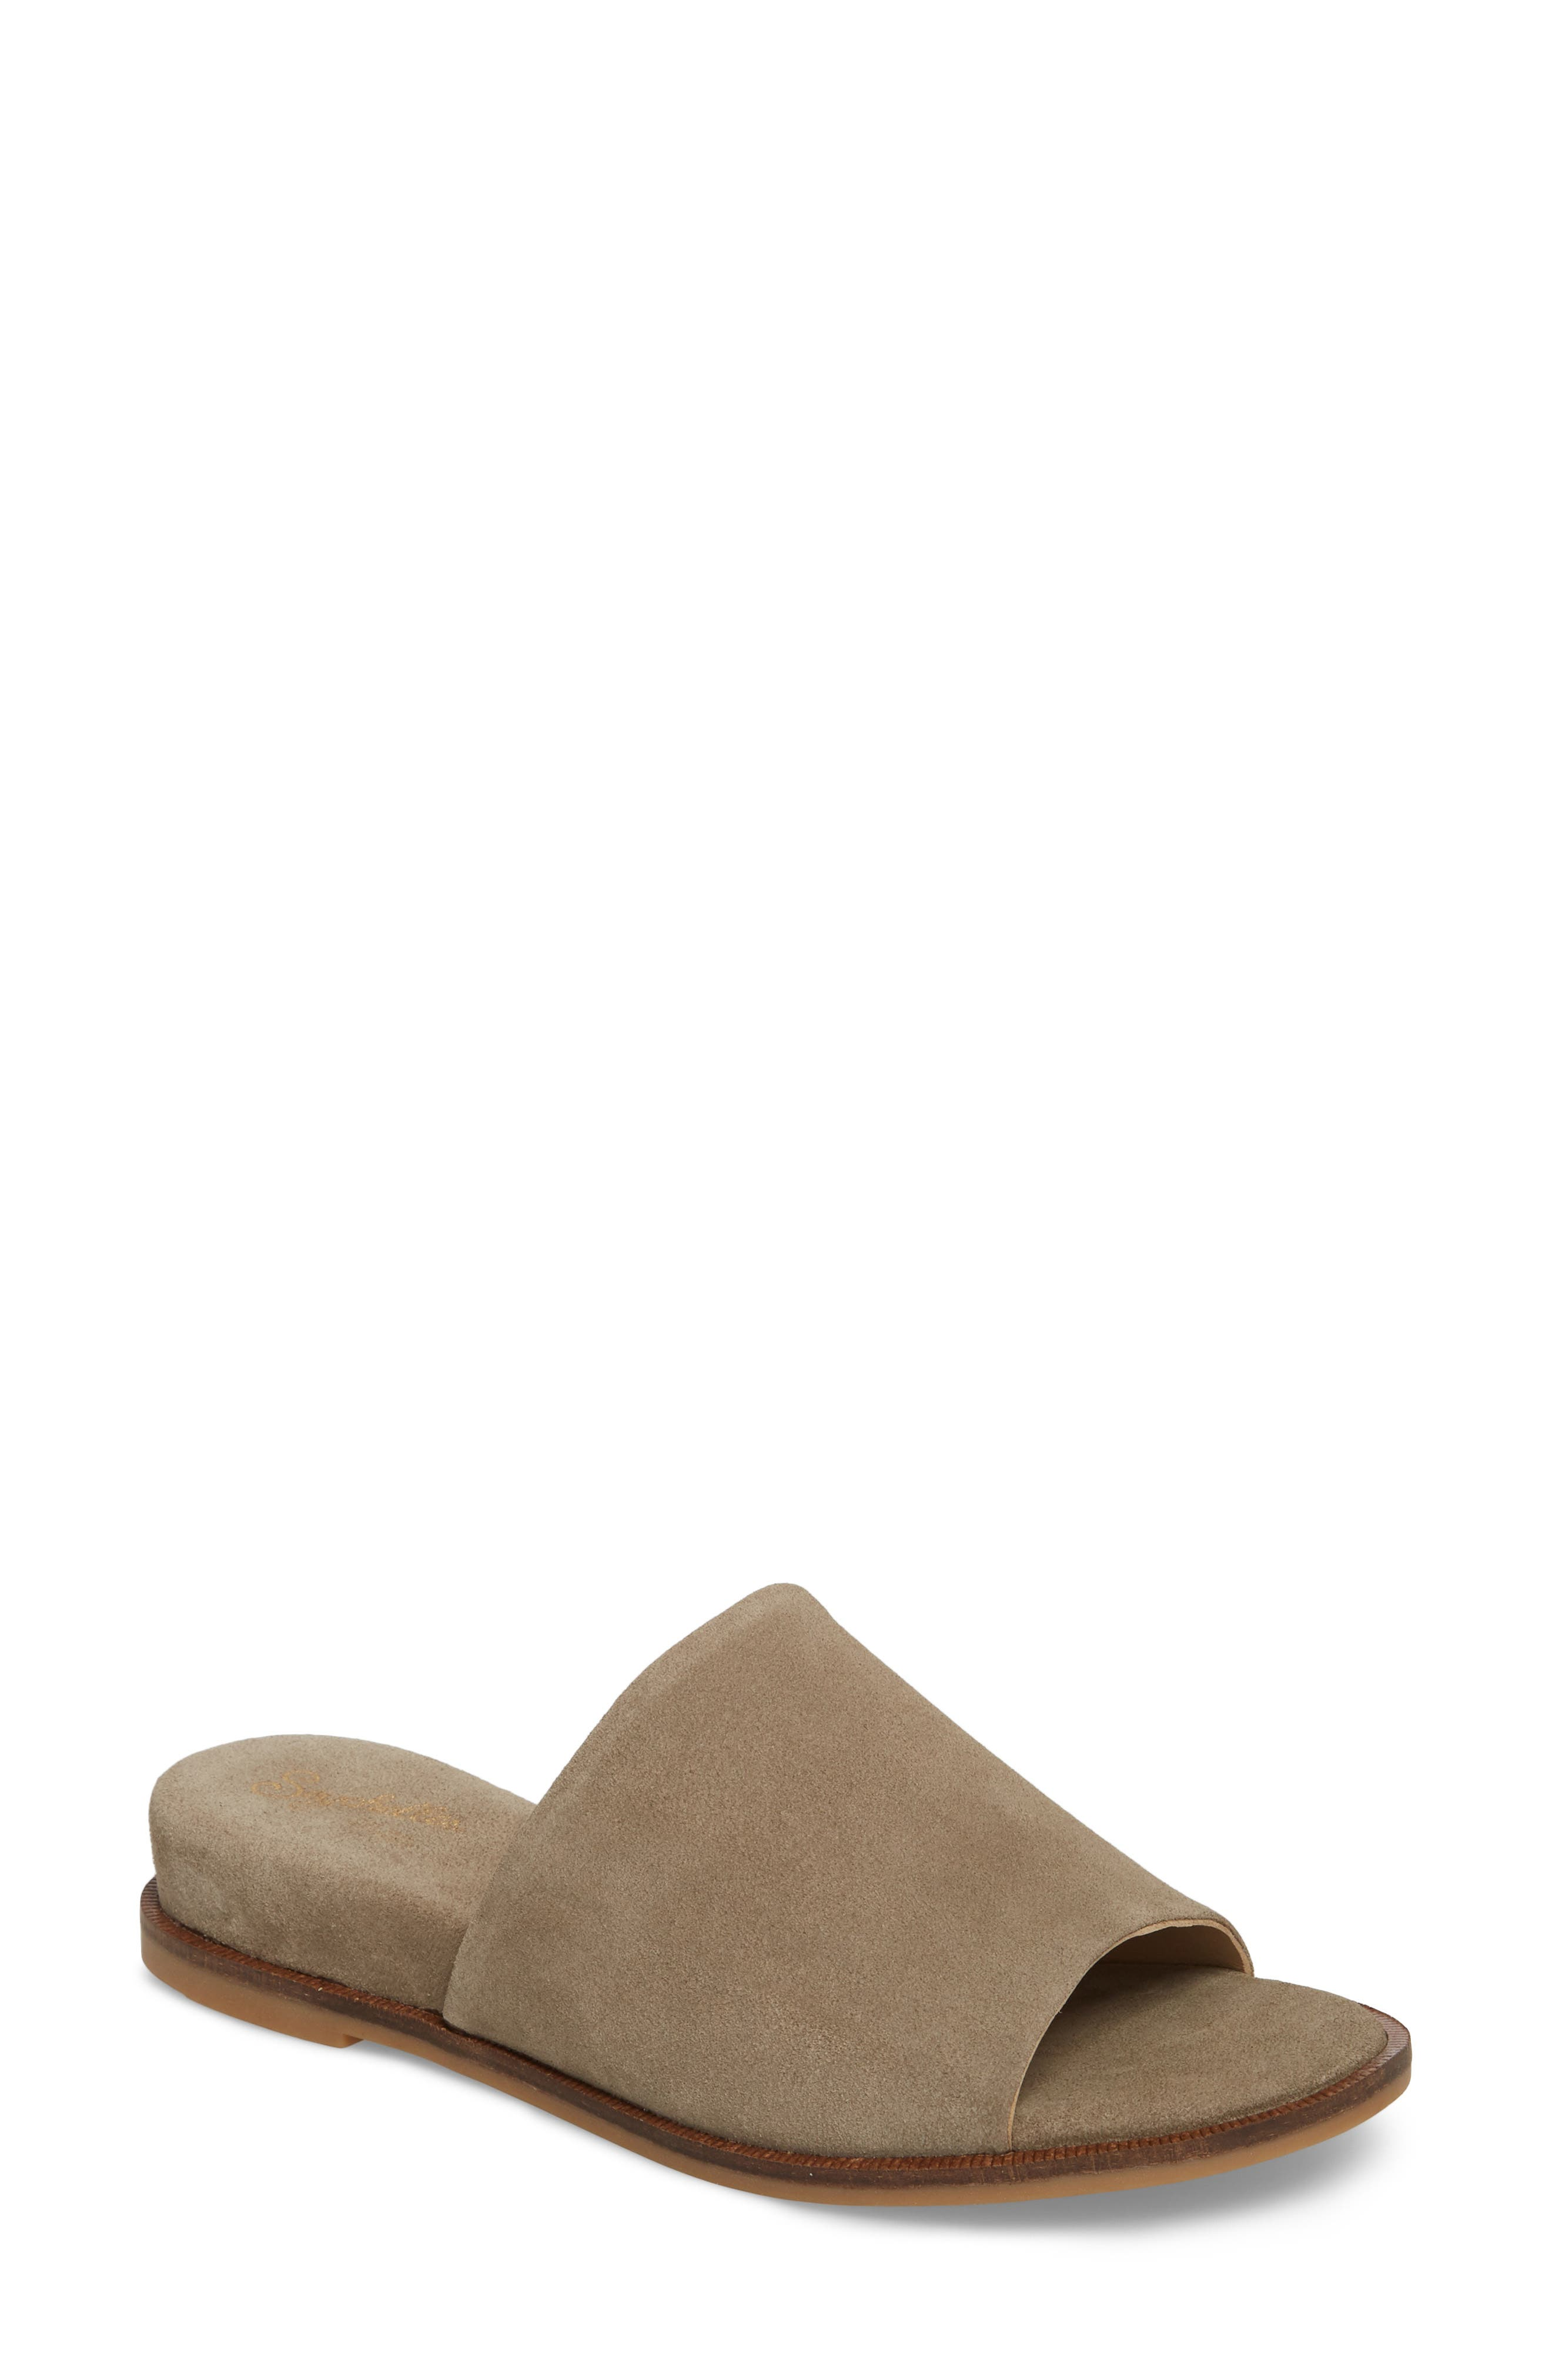 Relaxing Wedge Slide Sandal,                         Main,                         color, Taupe Leather